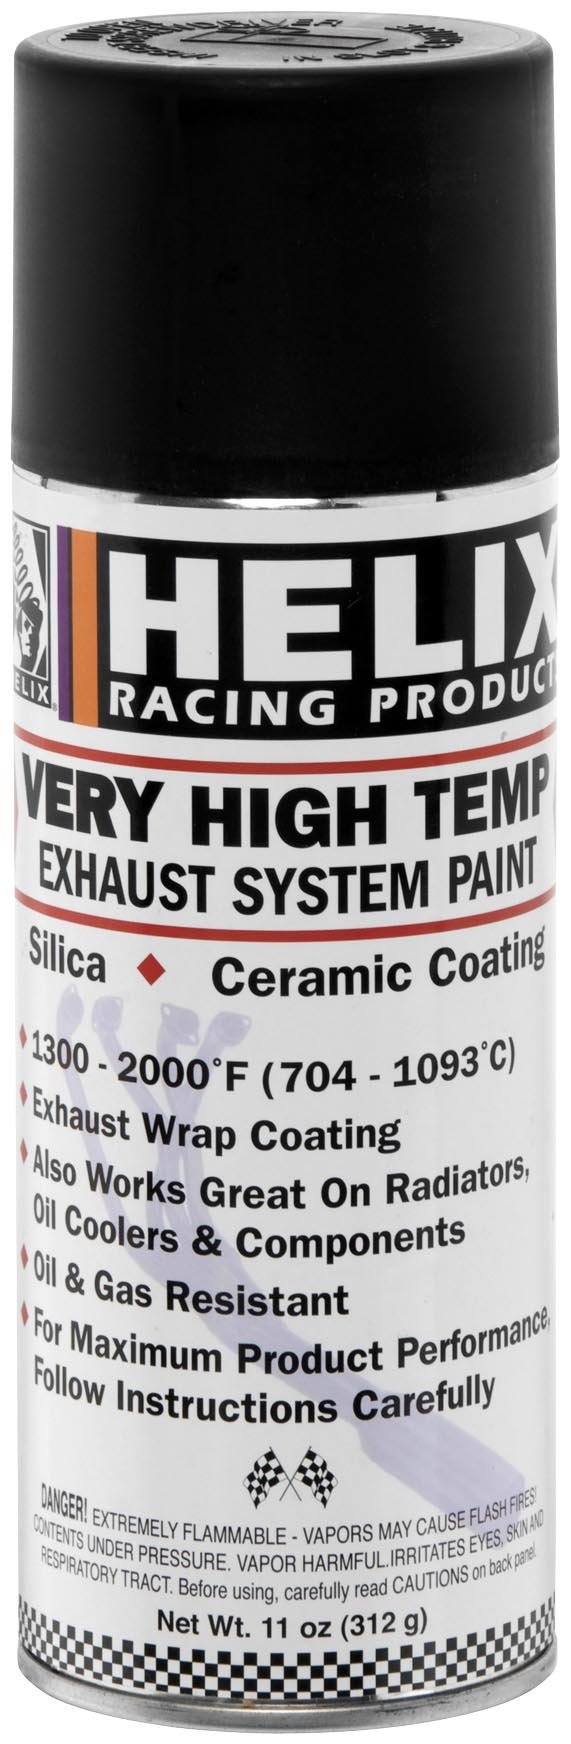 Helix Racing Products High-Temperature Exhaust Paint - Black 165-1020 by Helix Racing